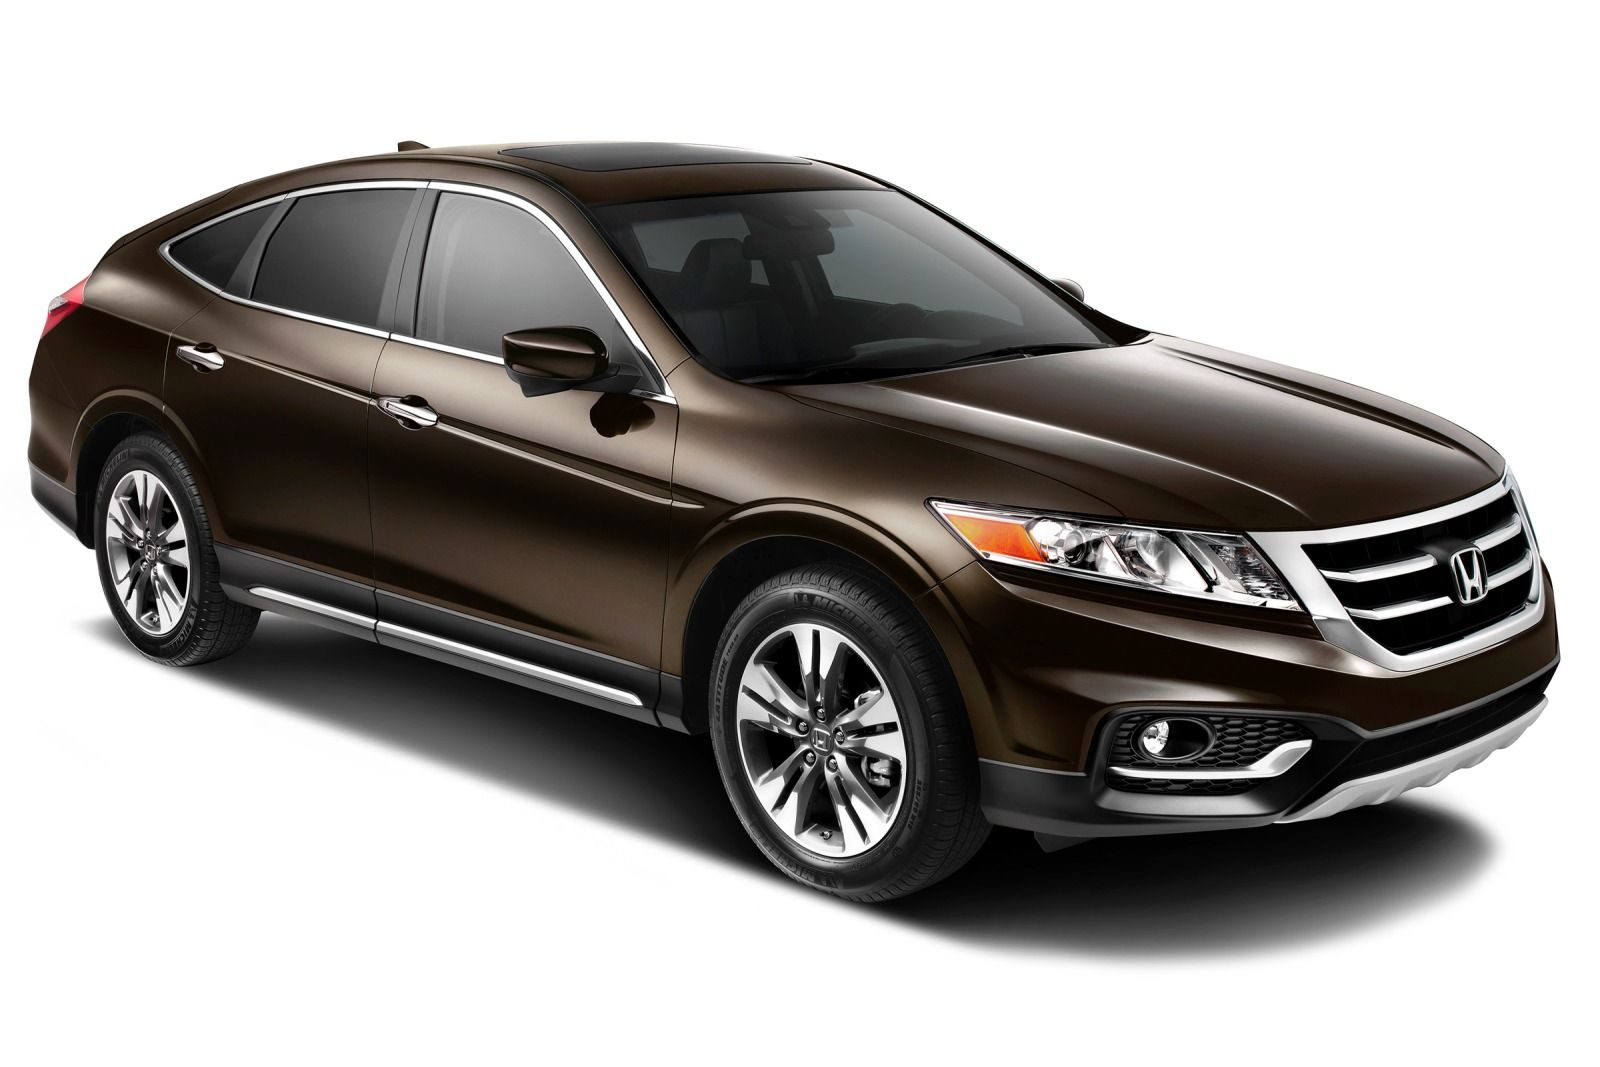 Honda Crosstour 2.4 2014 photo - 6